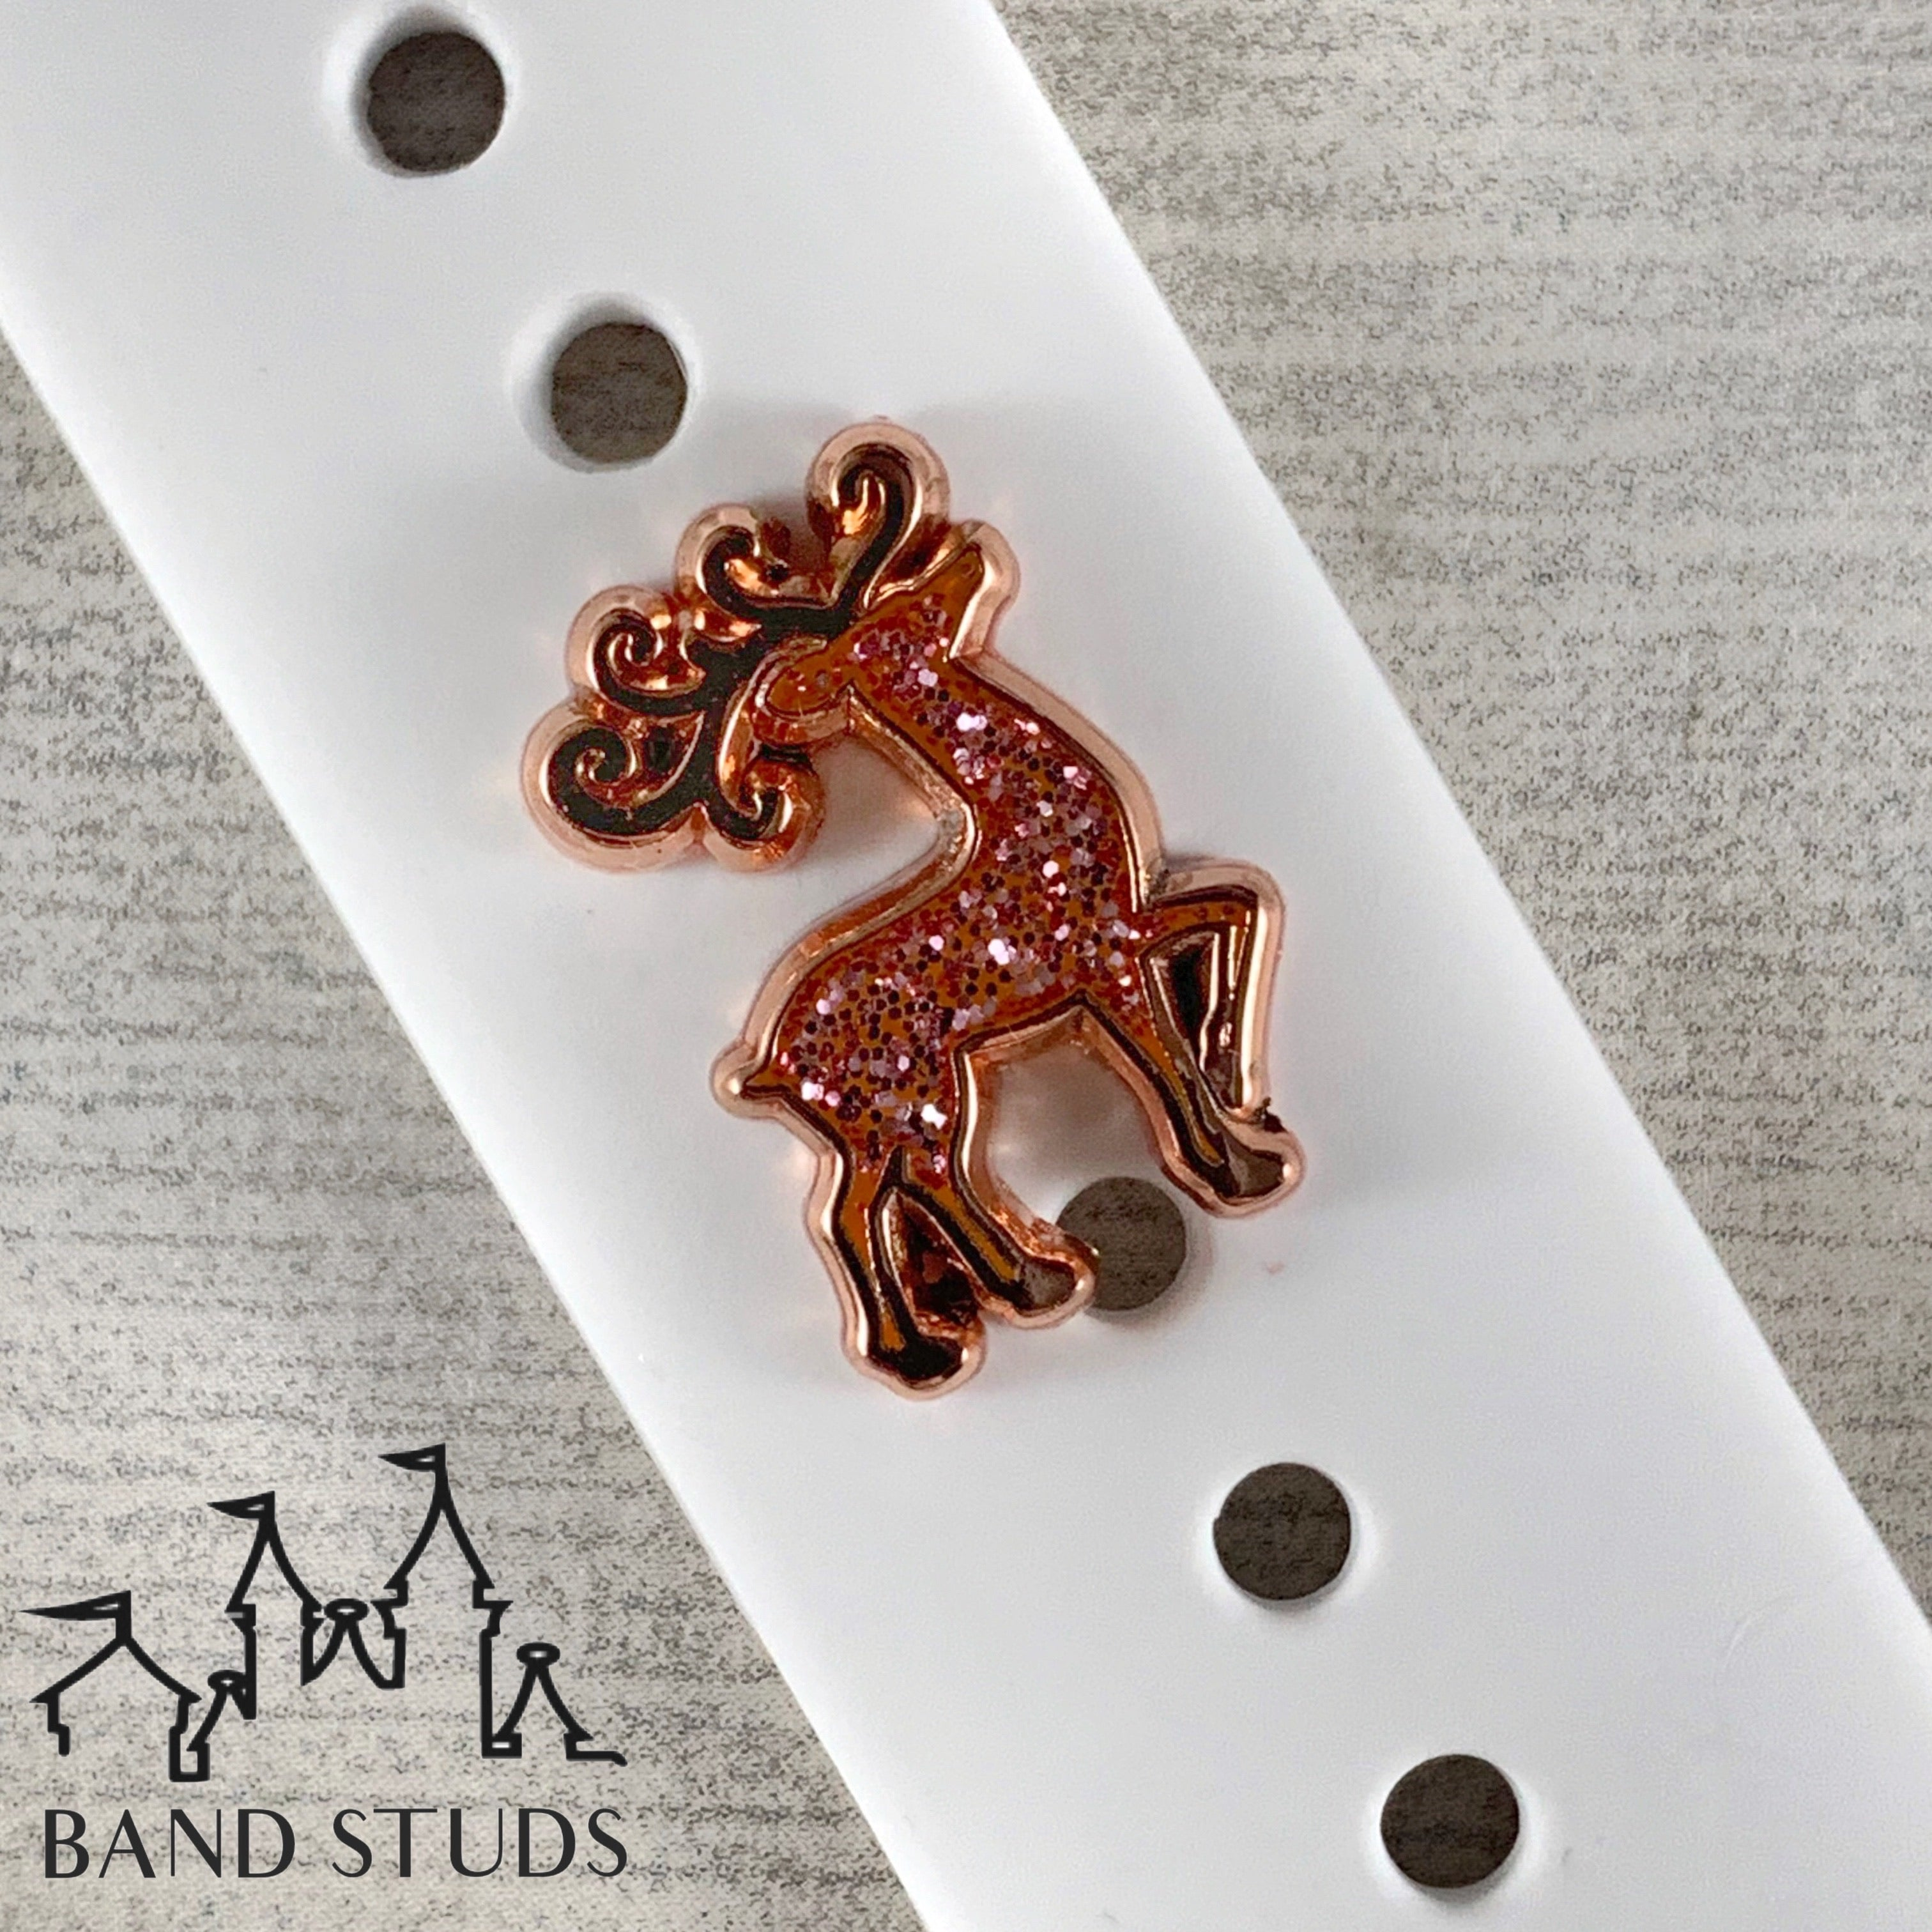 Band Stud - Christmas Collection - Majestic Reindeer READY TO SHIP